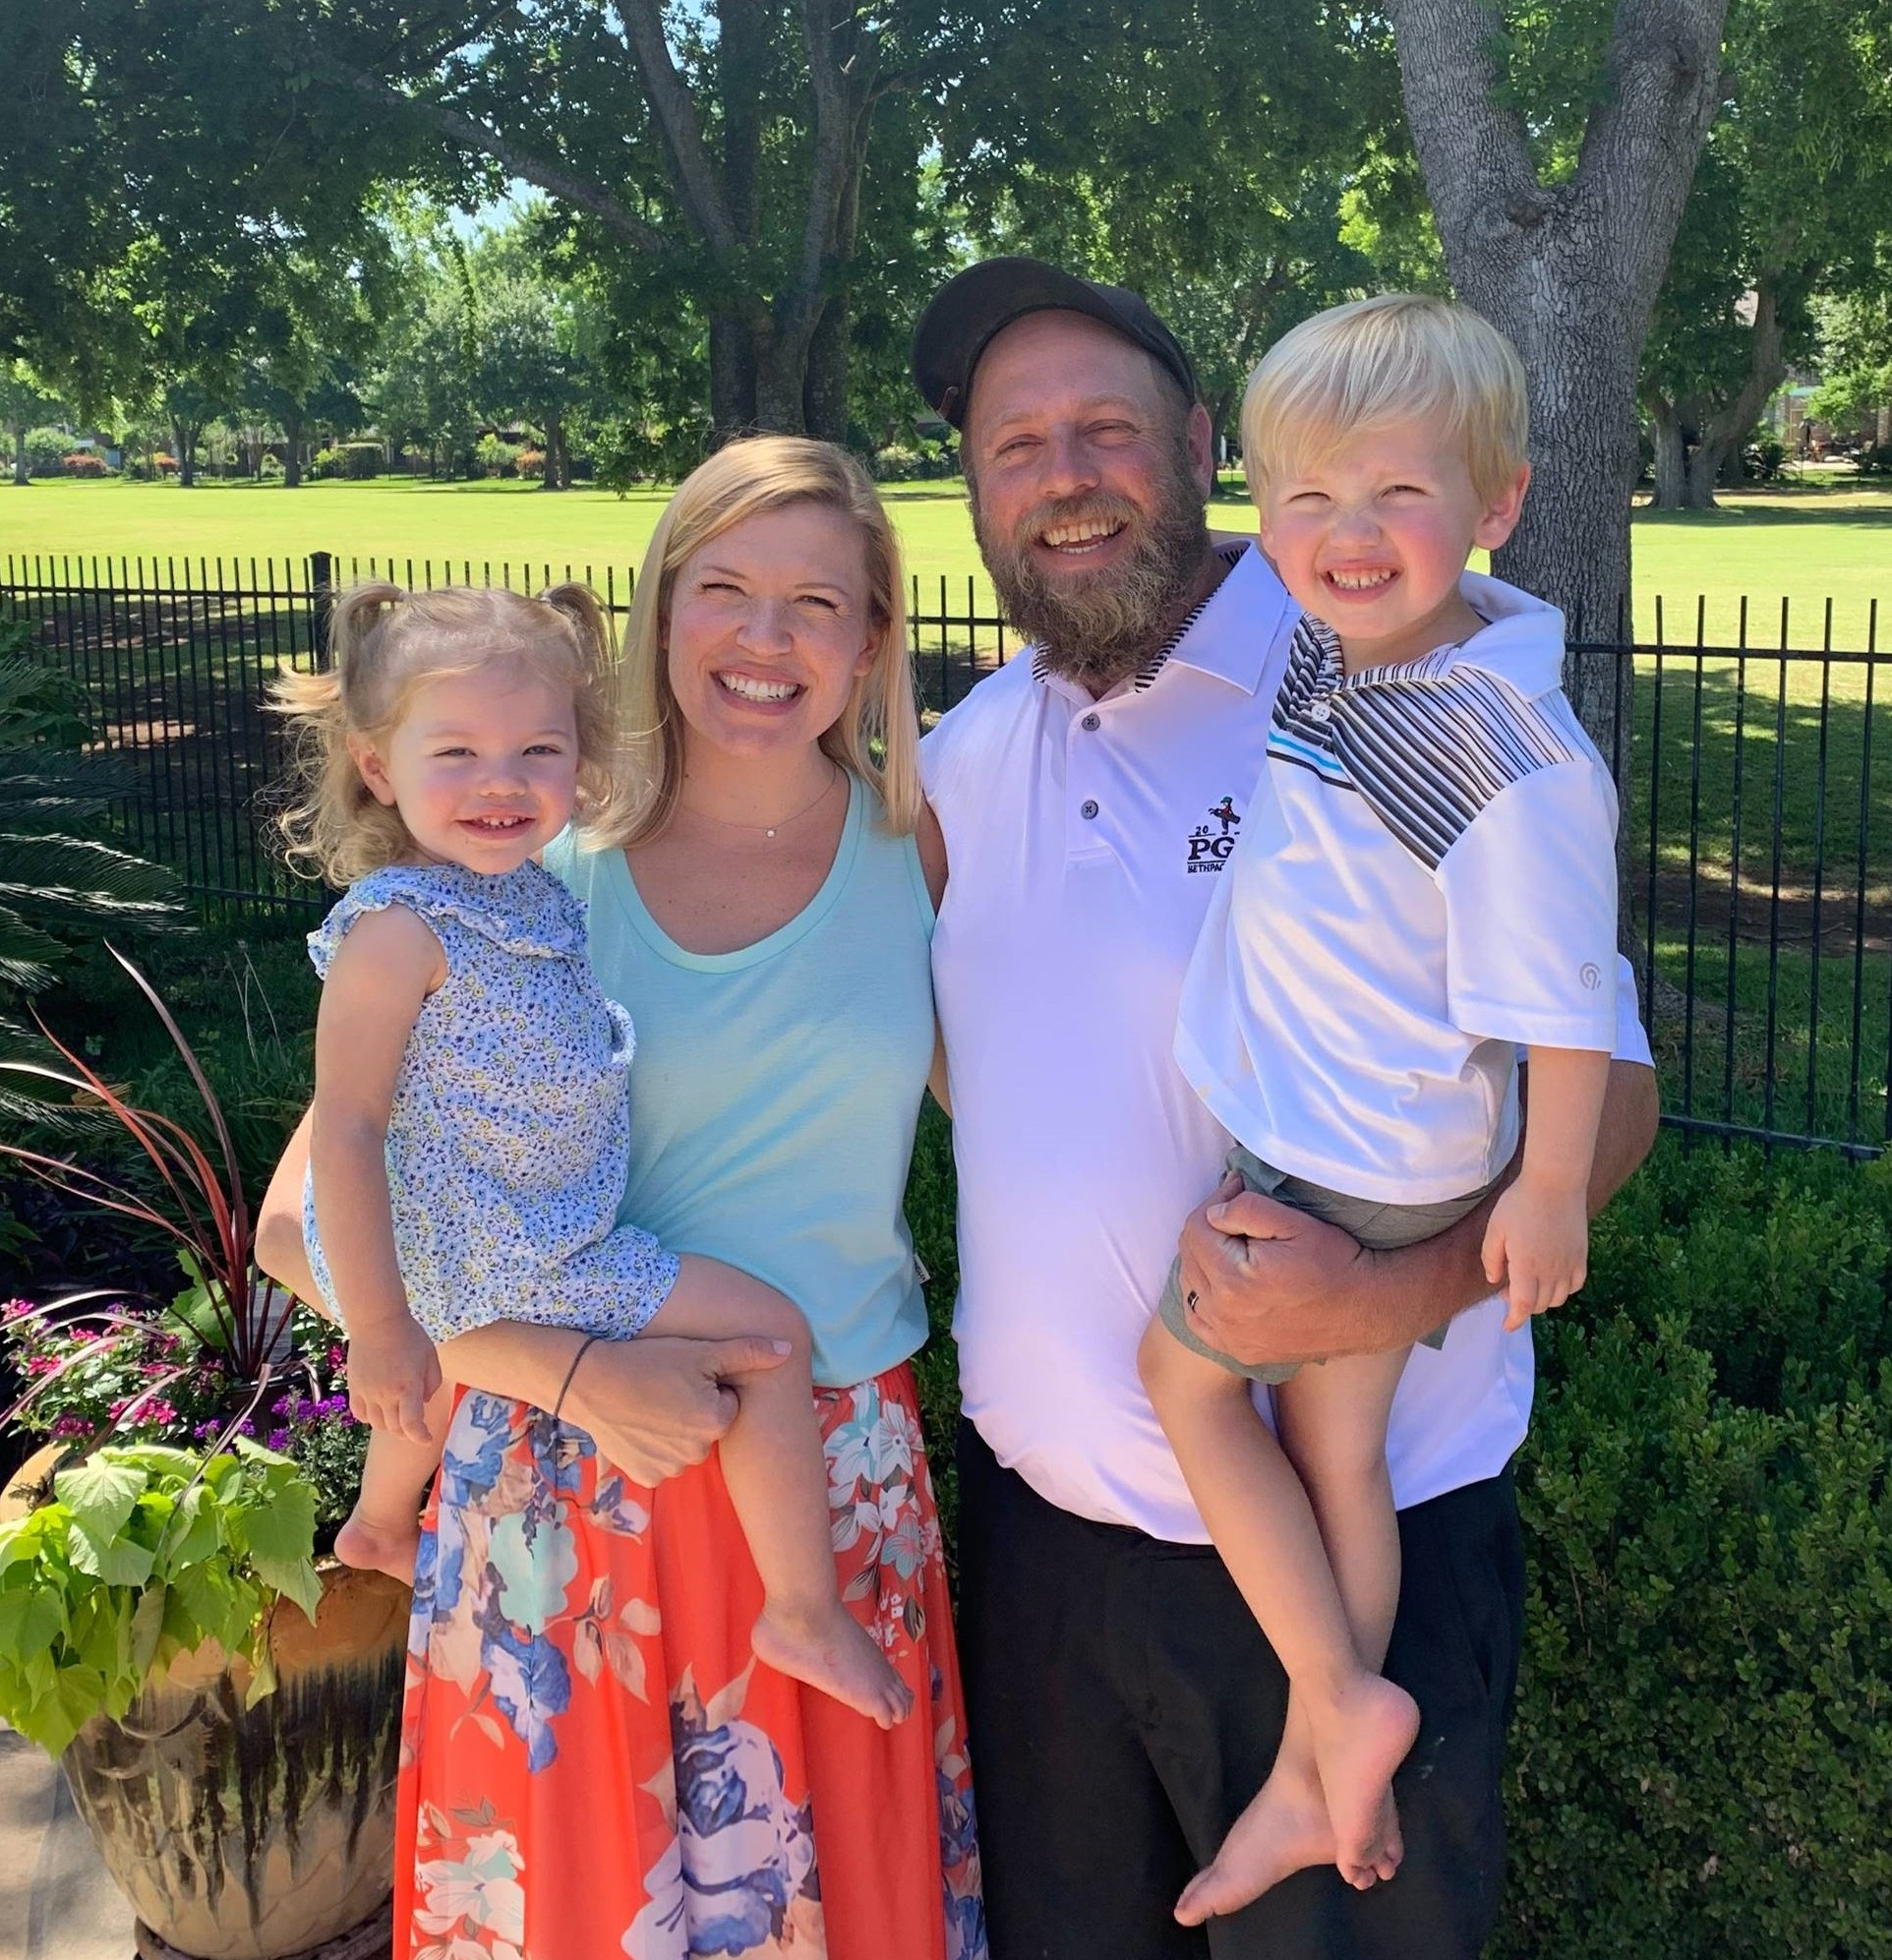 The Strubberg family has children enrolled at Primrose School of Barker Cypress located in Cypress, Texas 77429